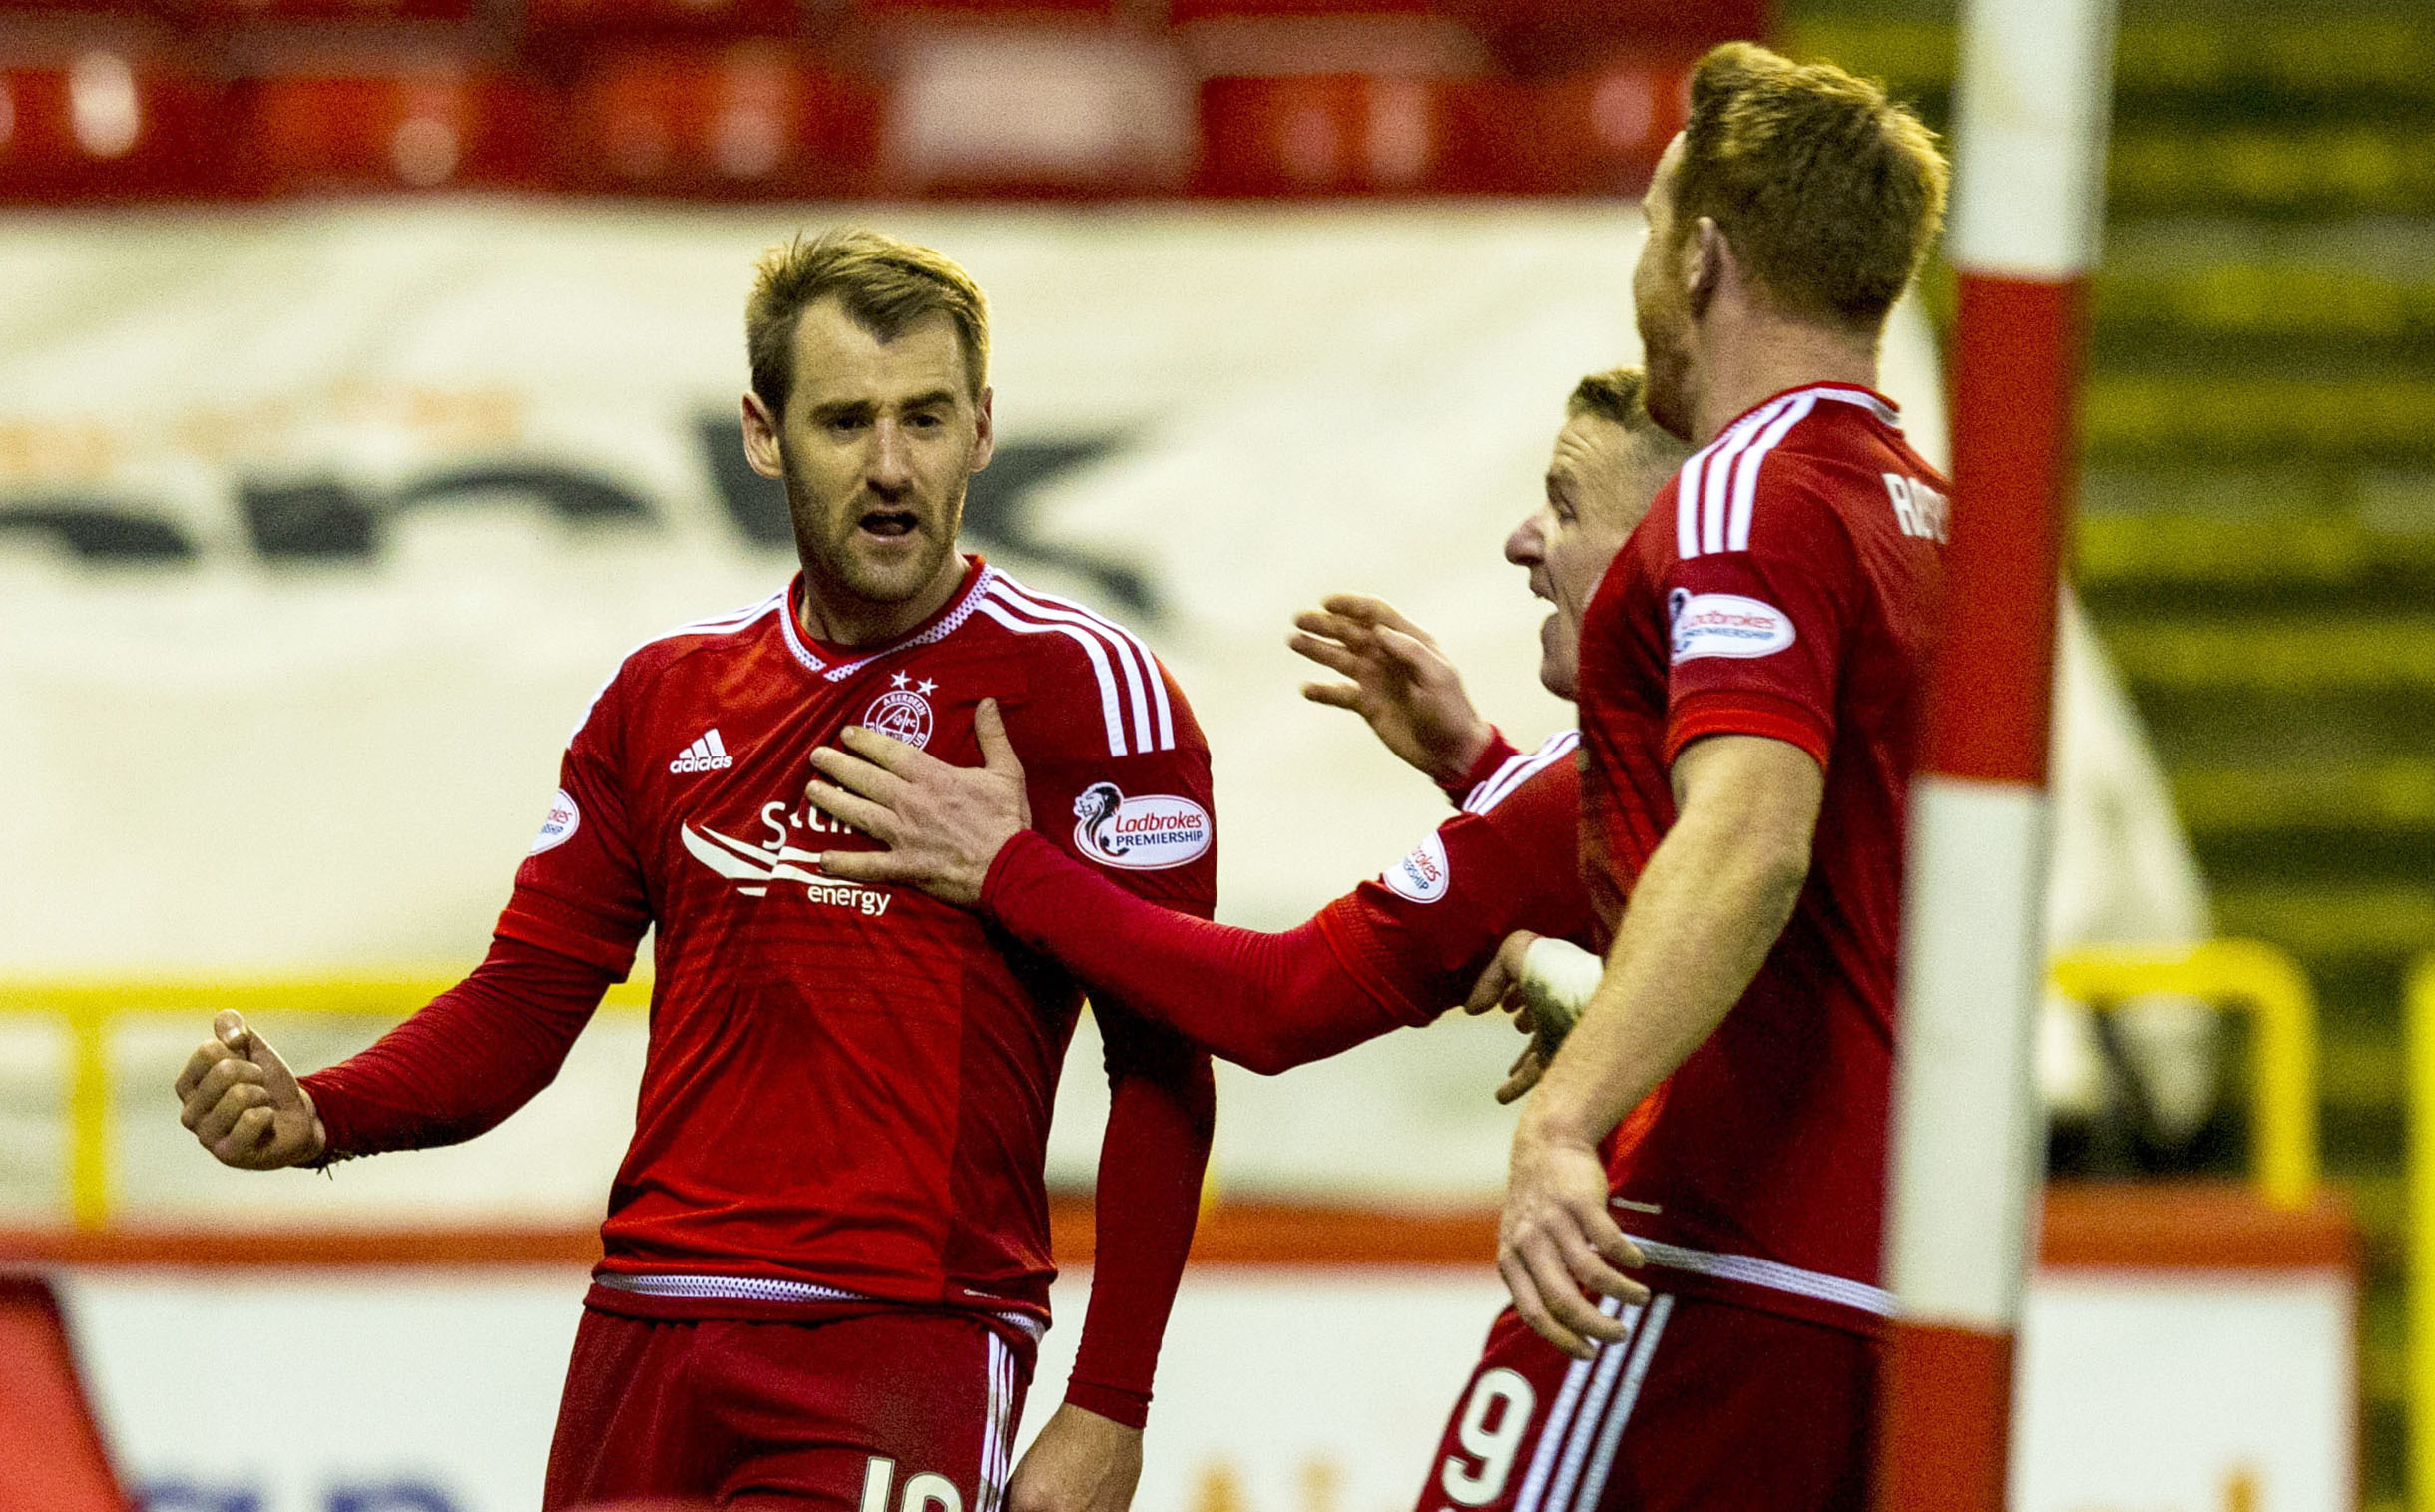 The Dons showed fighting spirit against Ross County.